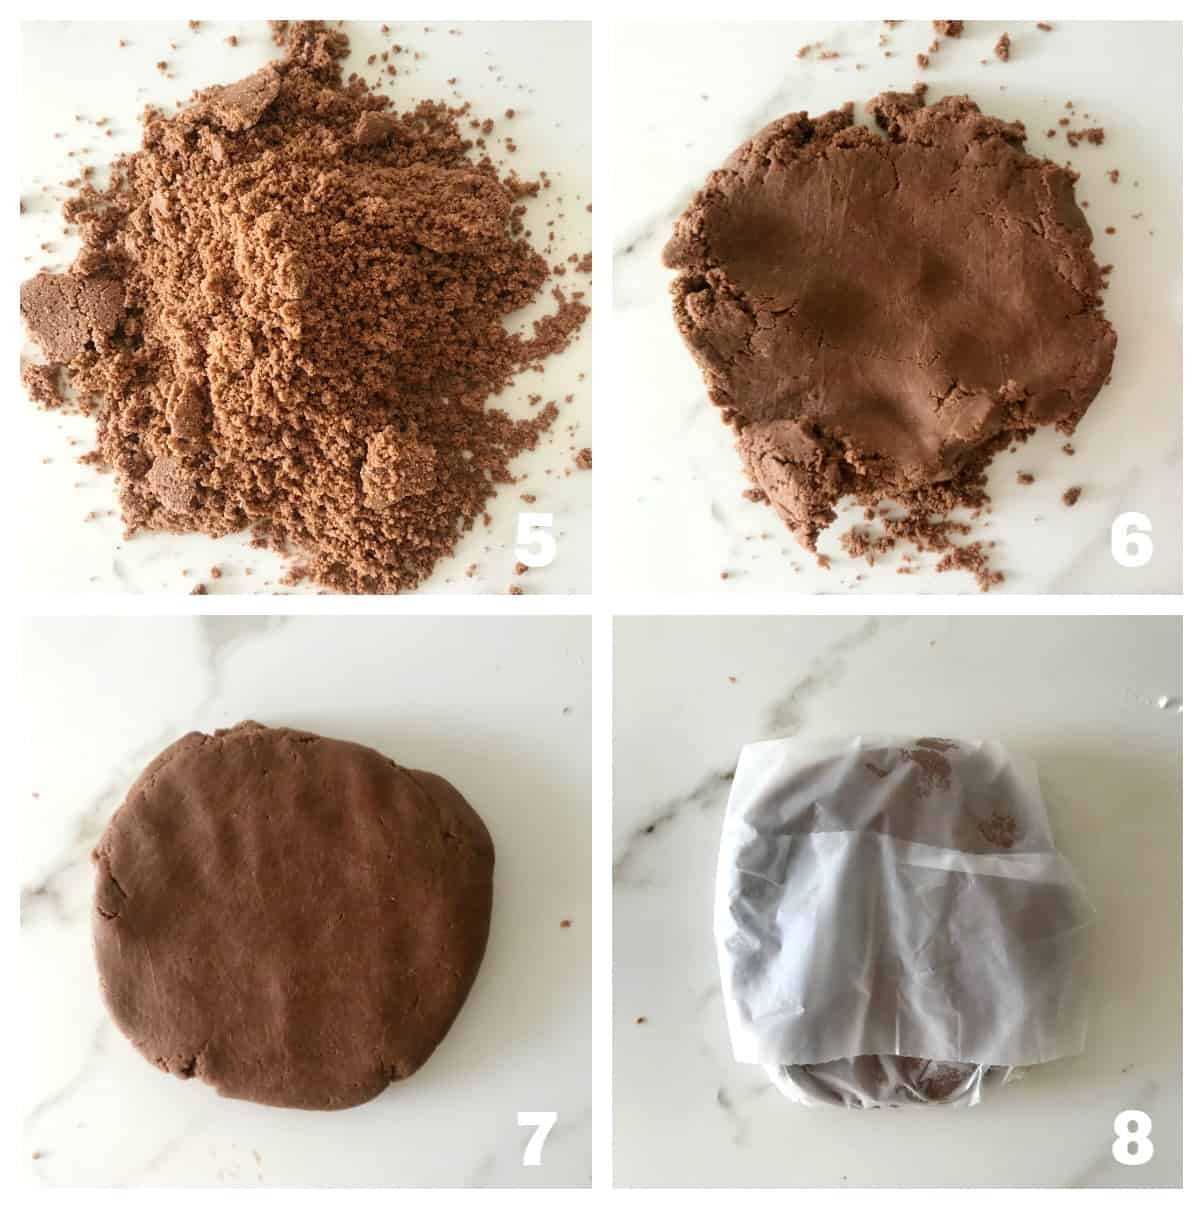 Chocolate mixture in white surface, patting it into a dough ball, wrapping it; 4 image Collage